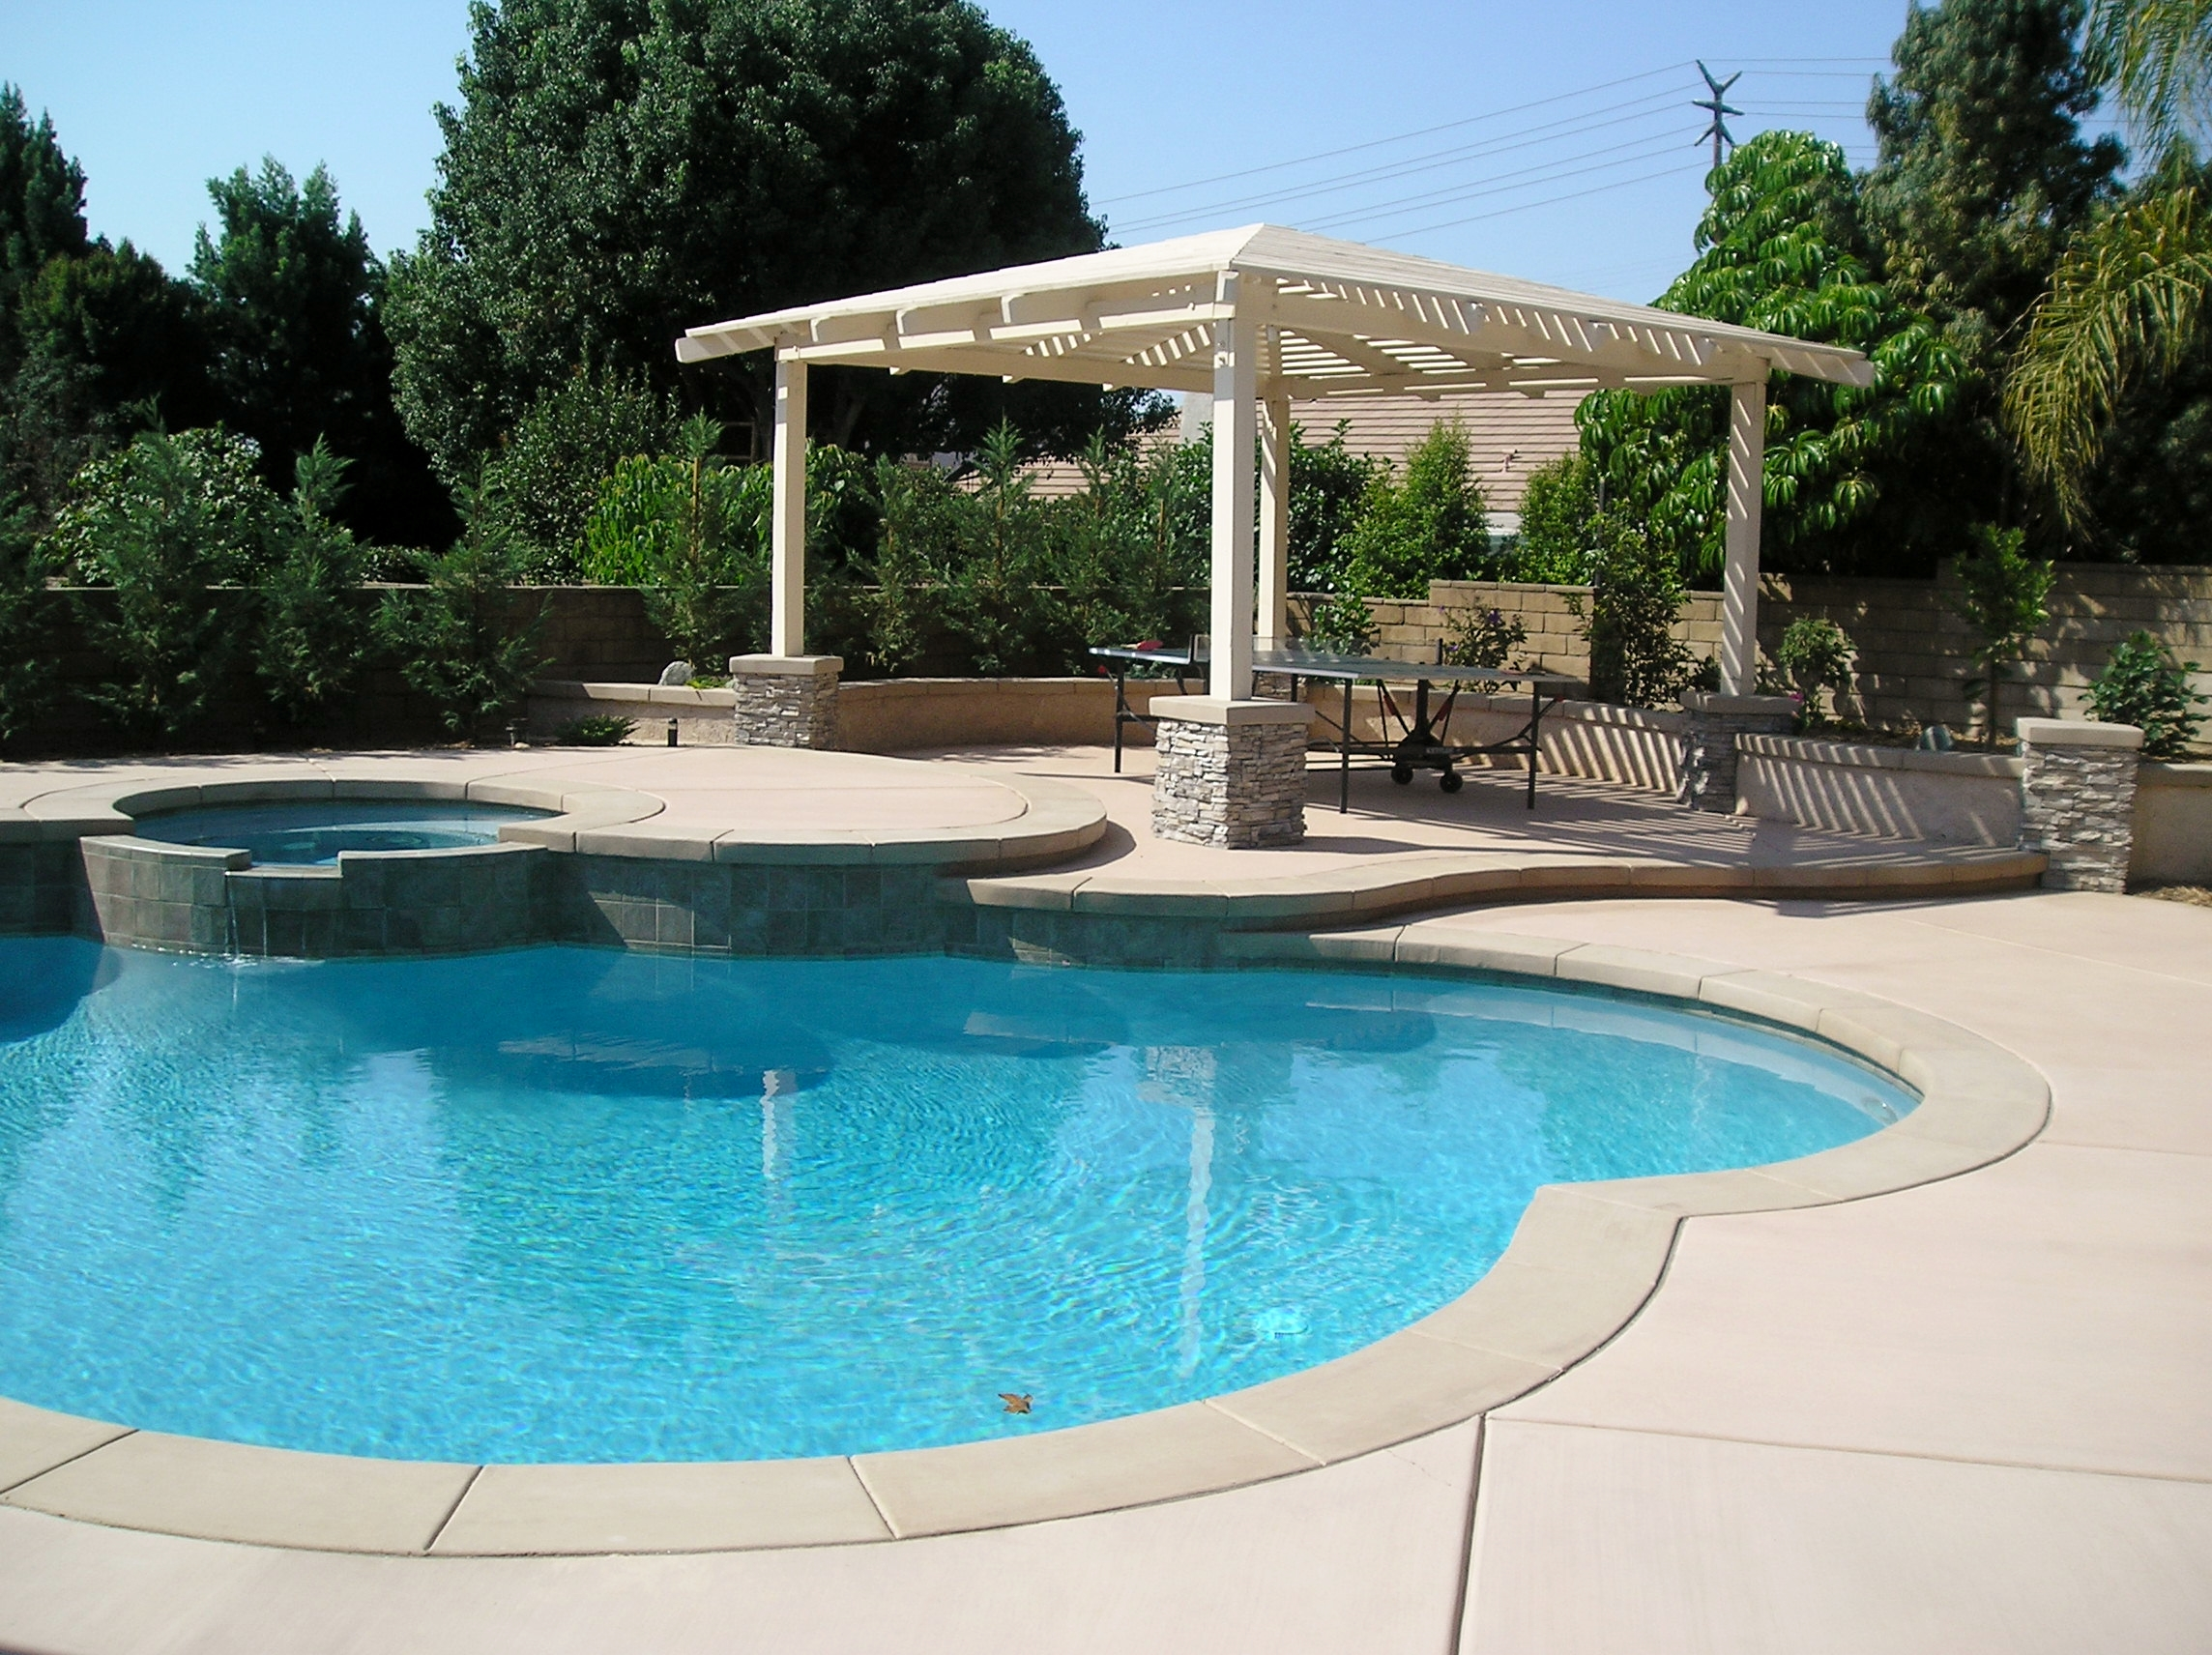 freestanding patio cover and pool with poured in place concrete coping